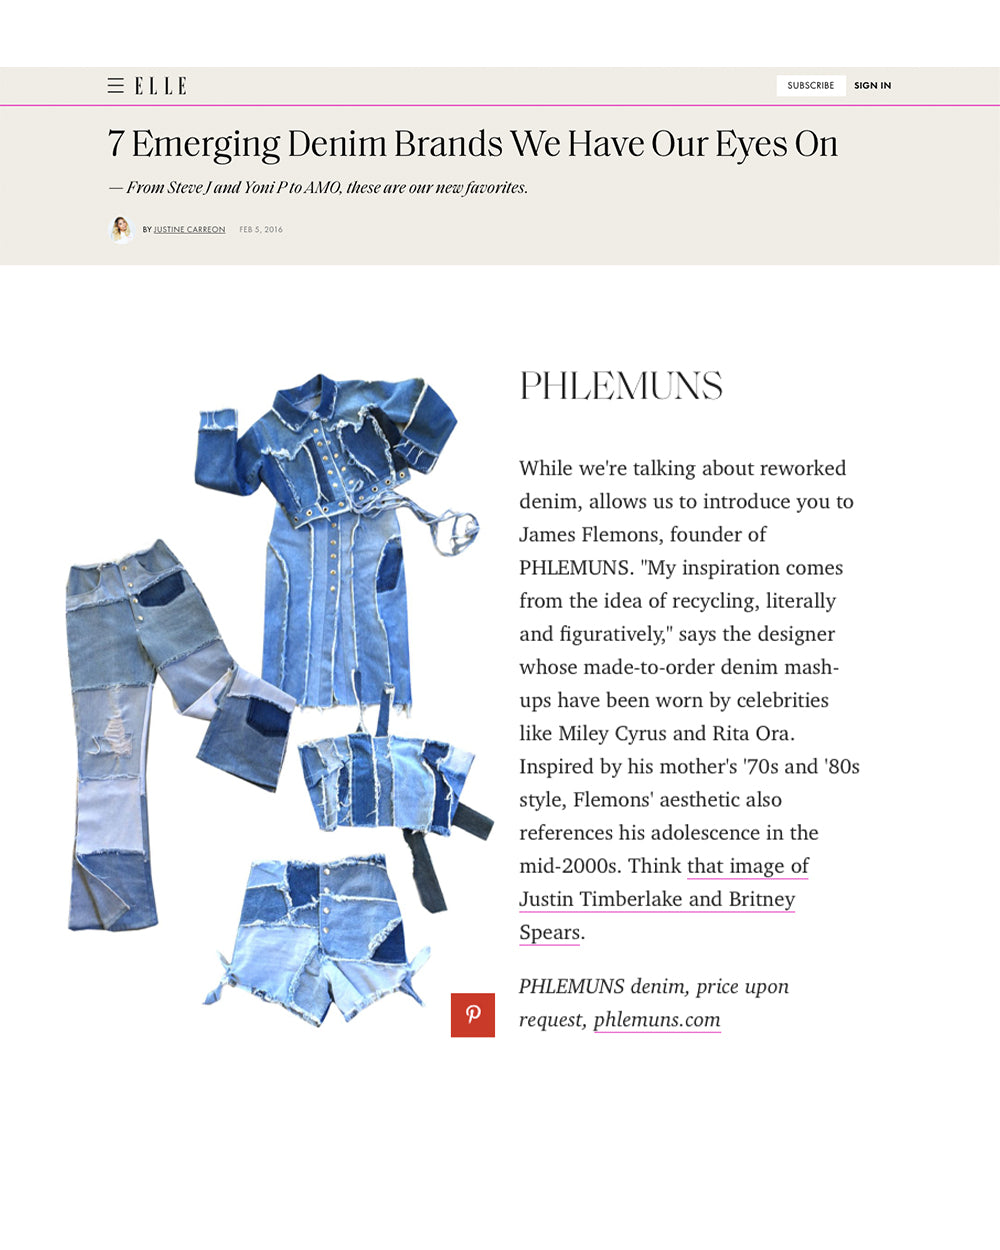 ELLE - 7 Emerging Denim Brands We Have Our Eyes On